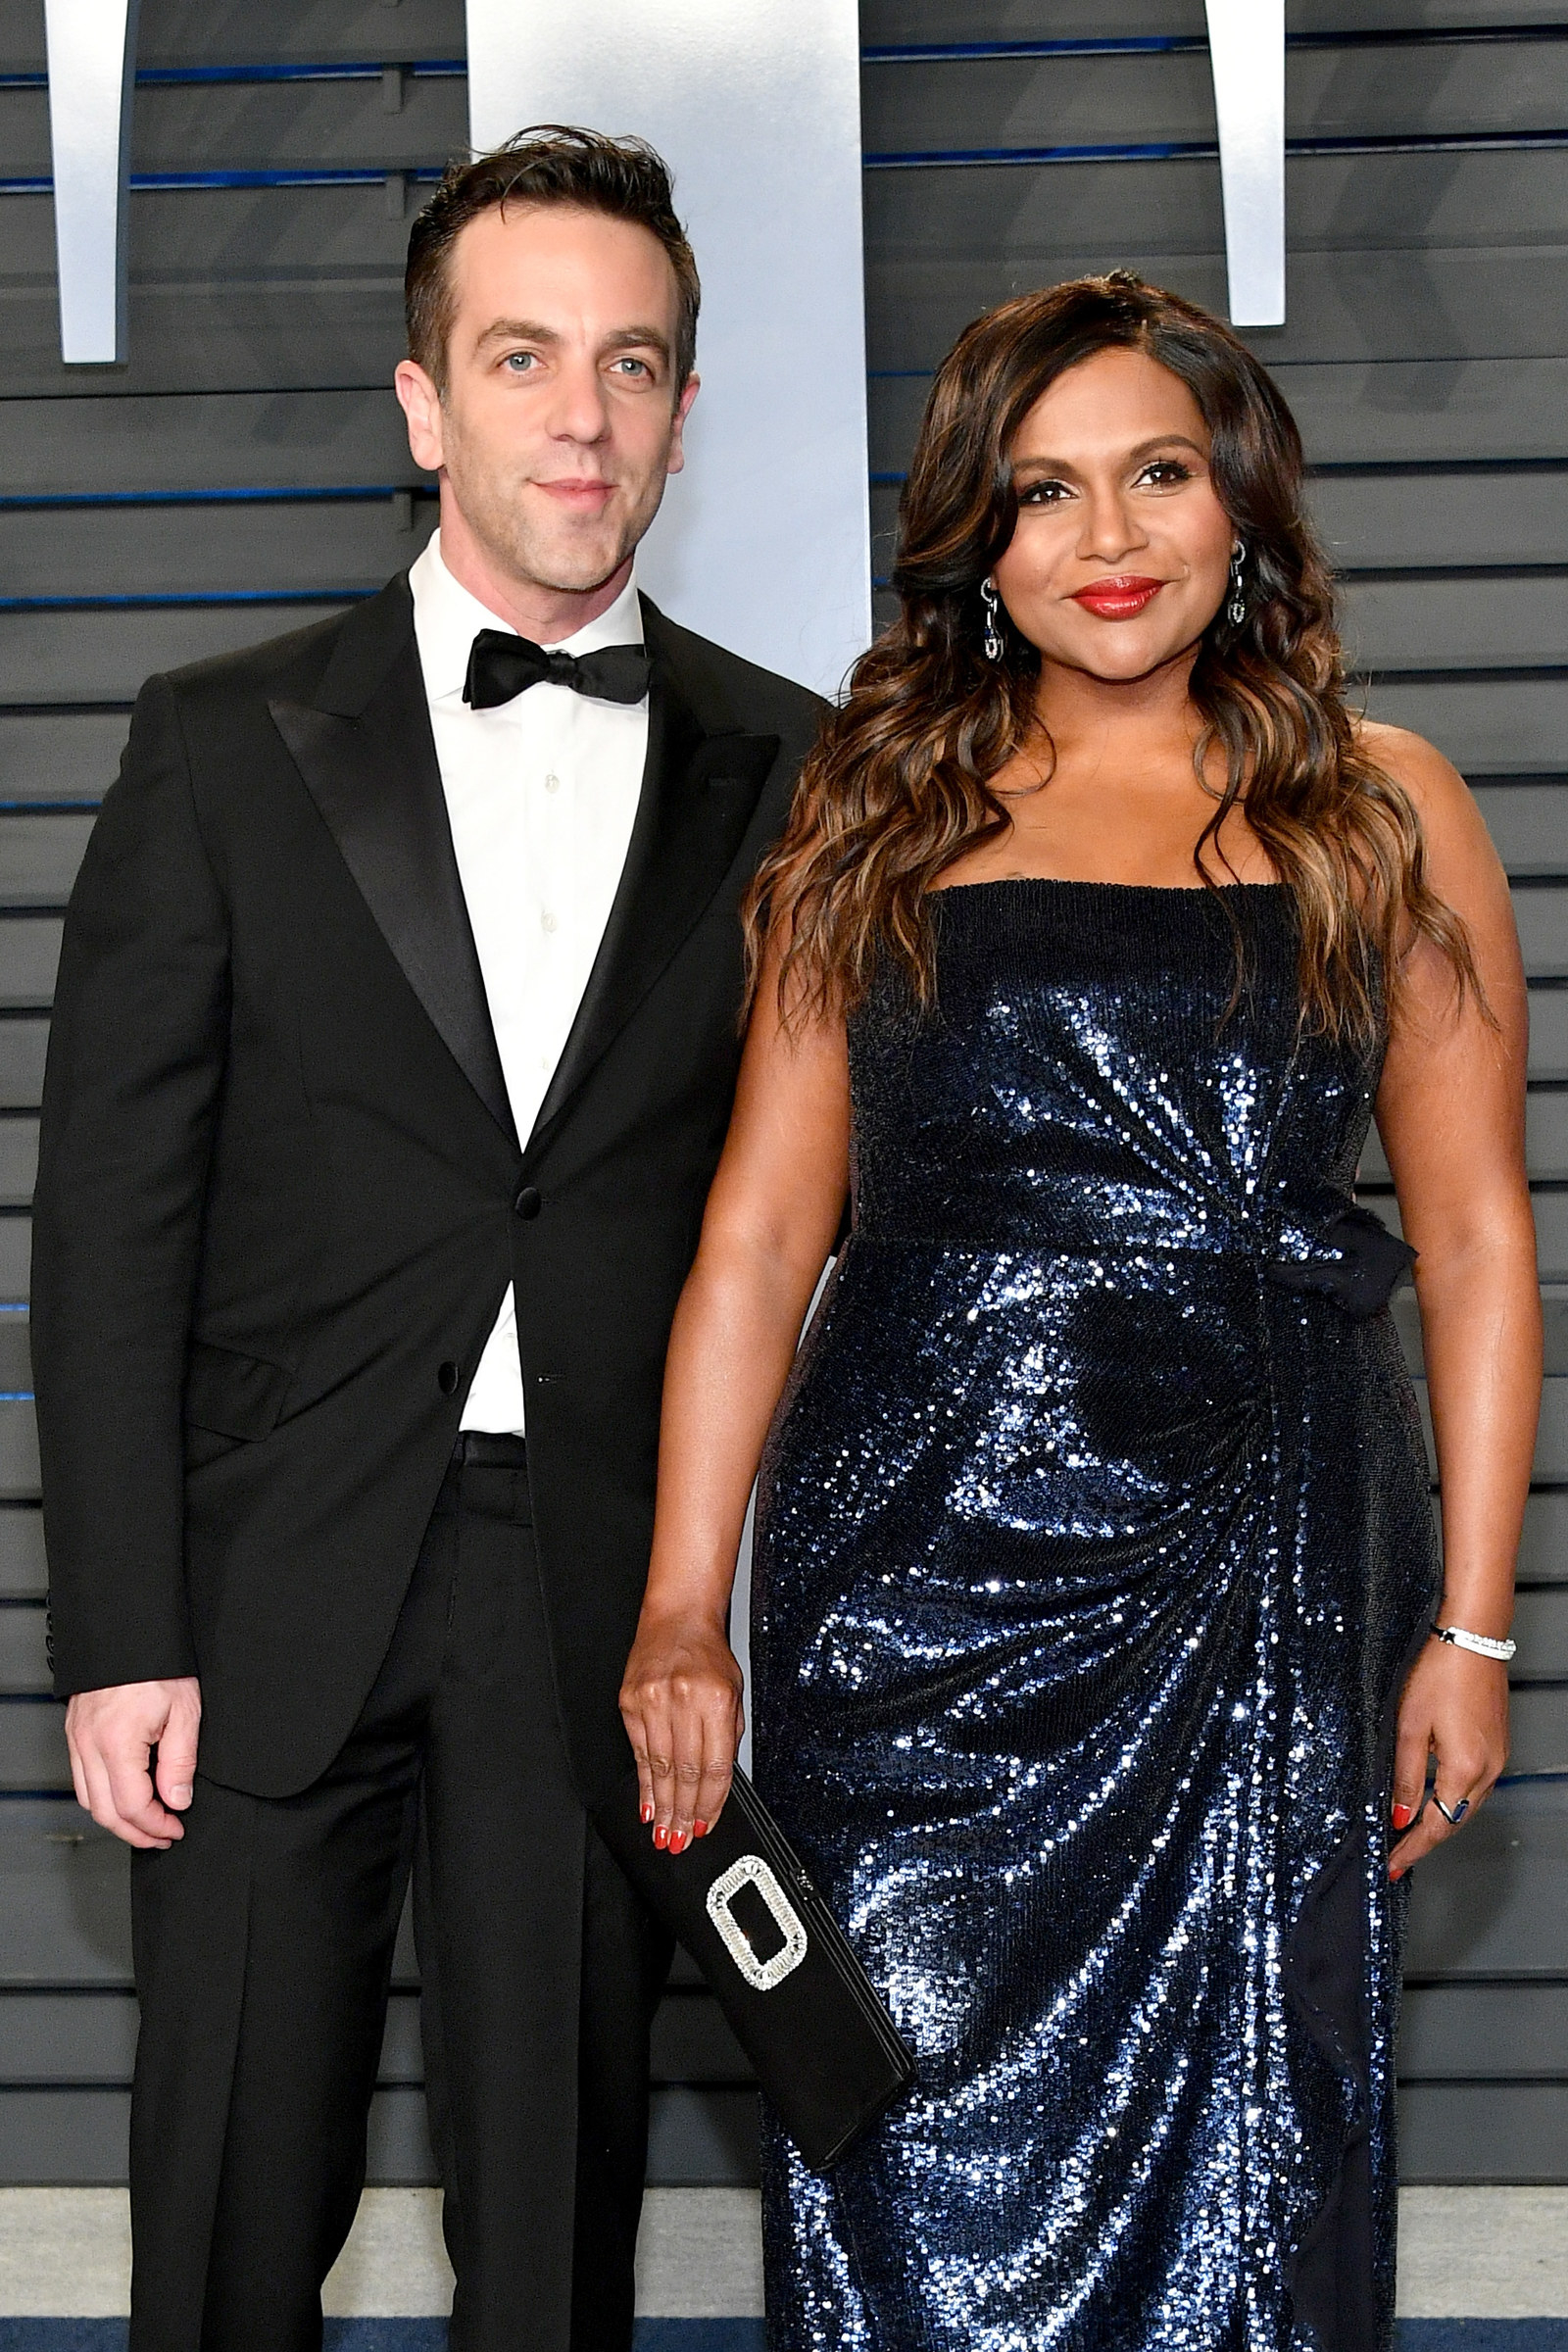 It's been a pretty  eventful time  for anyone who believes in *true* soup snakes — aka anything having to do with Mindy Kaling and BJ Novak.